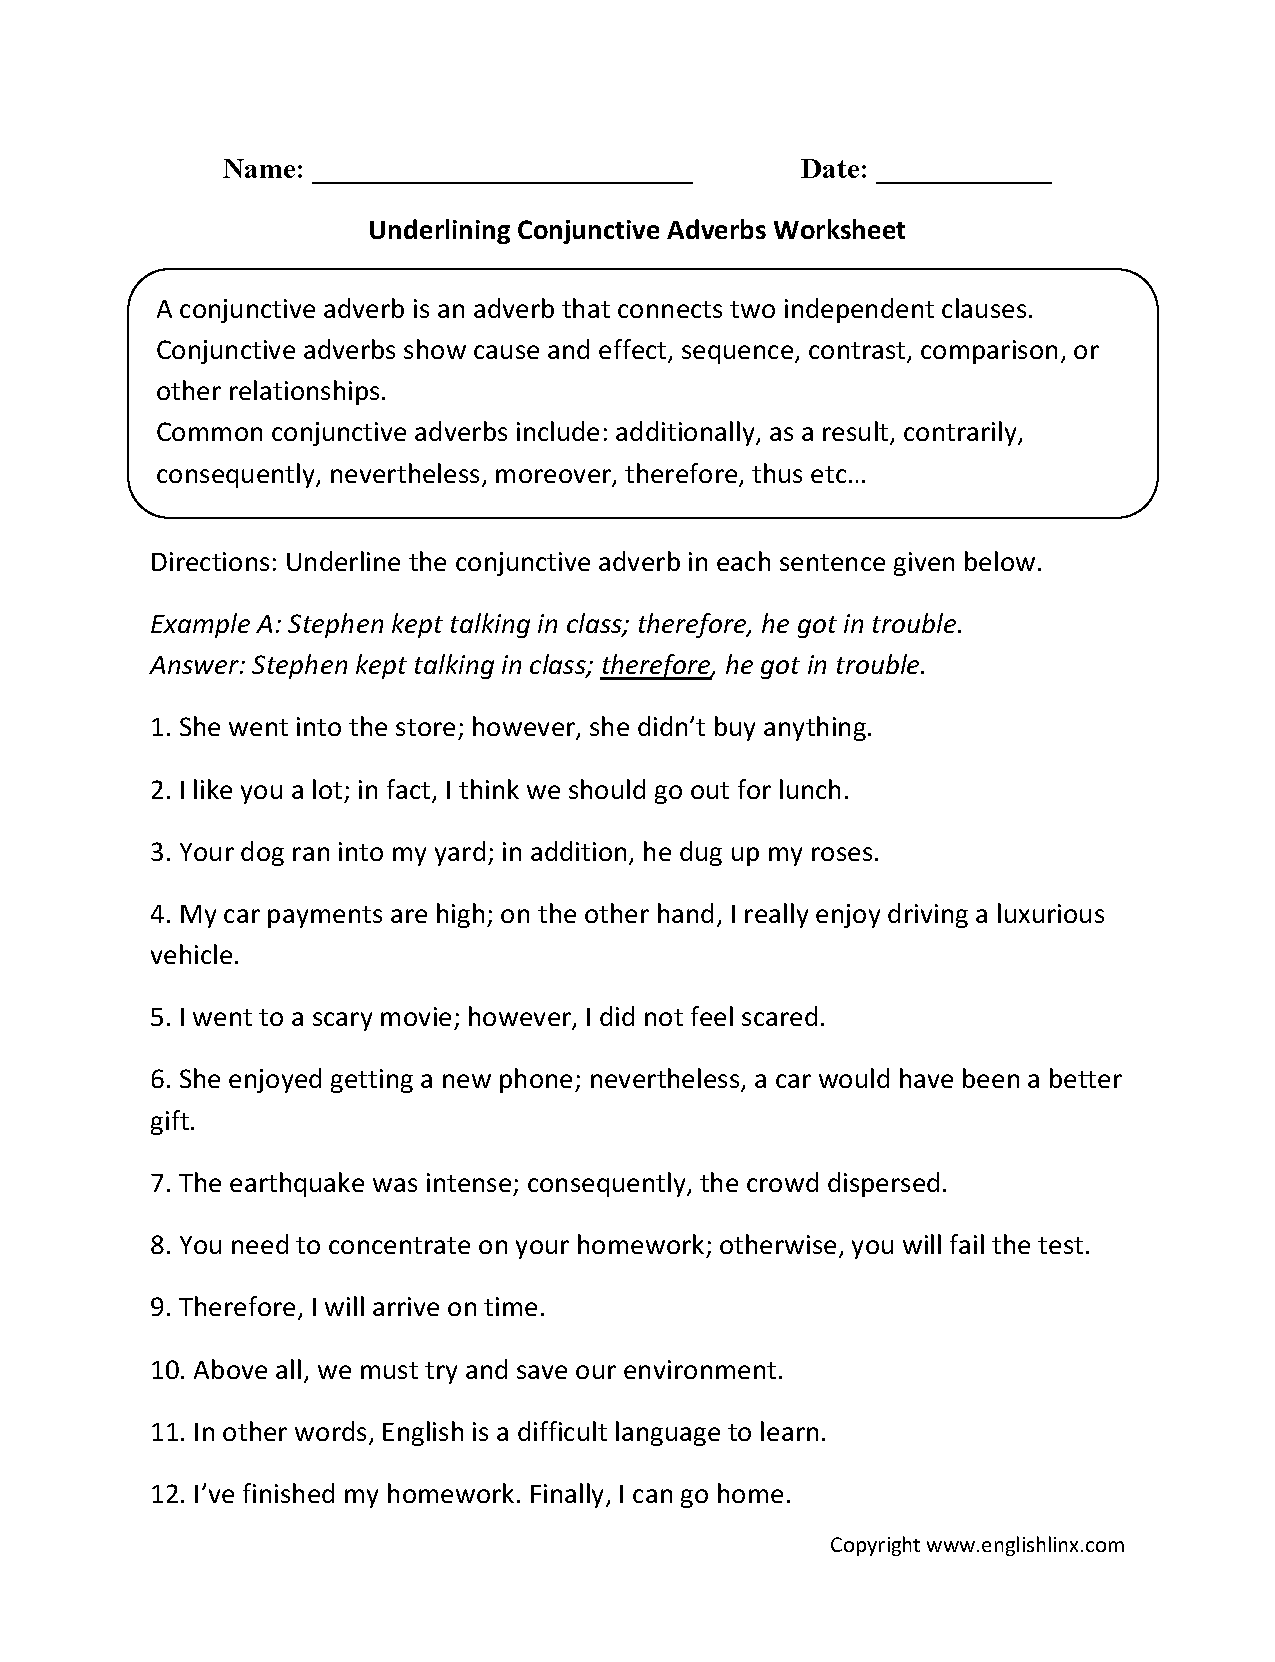 Weirdmailus  Fascinating Englishlinxcom  Conjunctions Worksheets With Interesting Worksheet With Comely Irs Personal Allowances Worksheet Also Magnet Worksheets For Kindergarten In Addition Circumference Worksheet Pdf And Diabetic Meal Planning Worksheet As Well As Blank Handwriting Worksheets For Kindergarten Additionally Nd Grade Math Problem Solving Worksheets From Englishlinxcom With Weirdmailus  Interesting Englishlinxcom  Conjunctions Worksheets With Comely Worksheet And Fascinating Irs Personal Allowances Worksheet Also Magnet Worksheets For Kindergarten In Addition Circumference Worksheet Pdf From Englishlinxcom